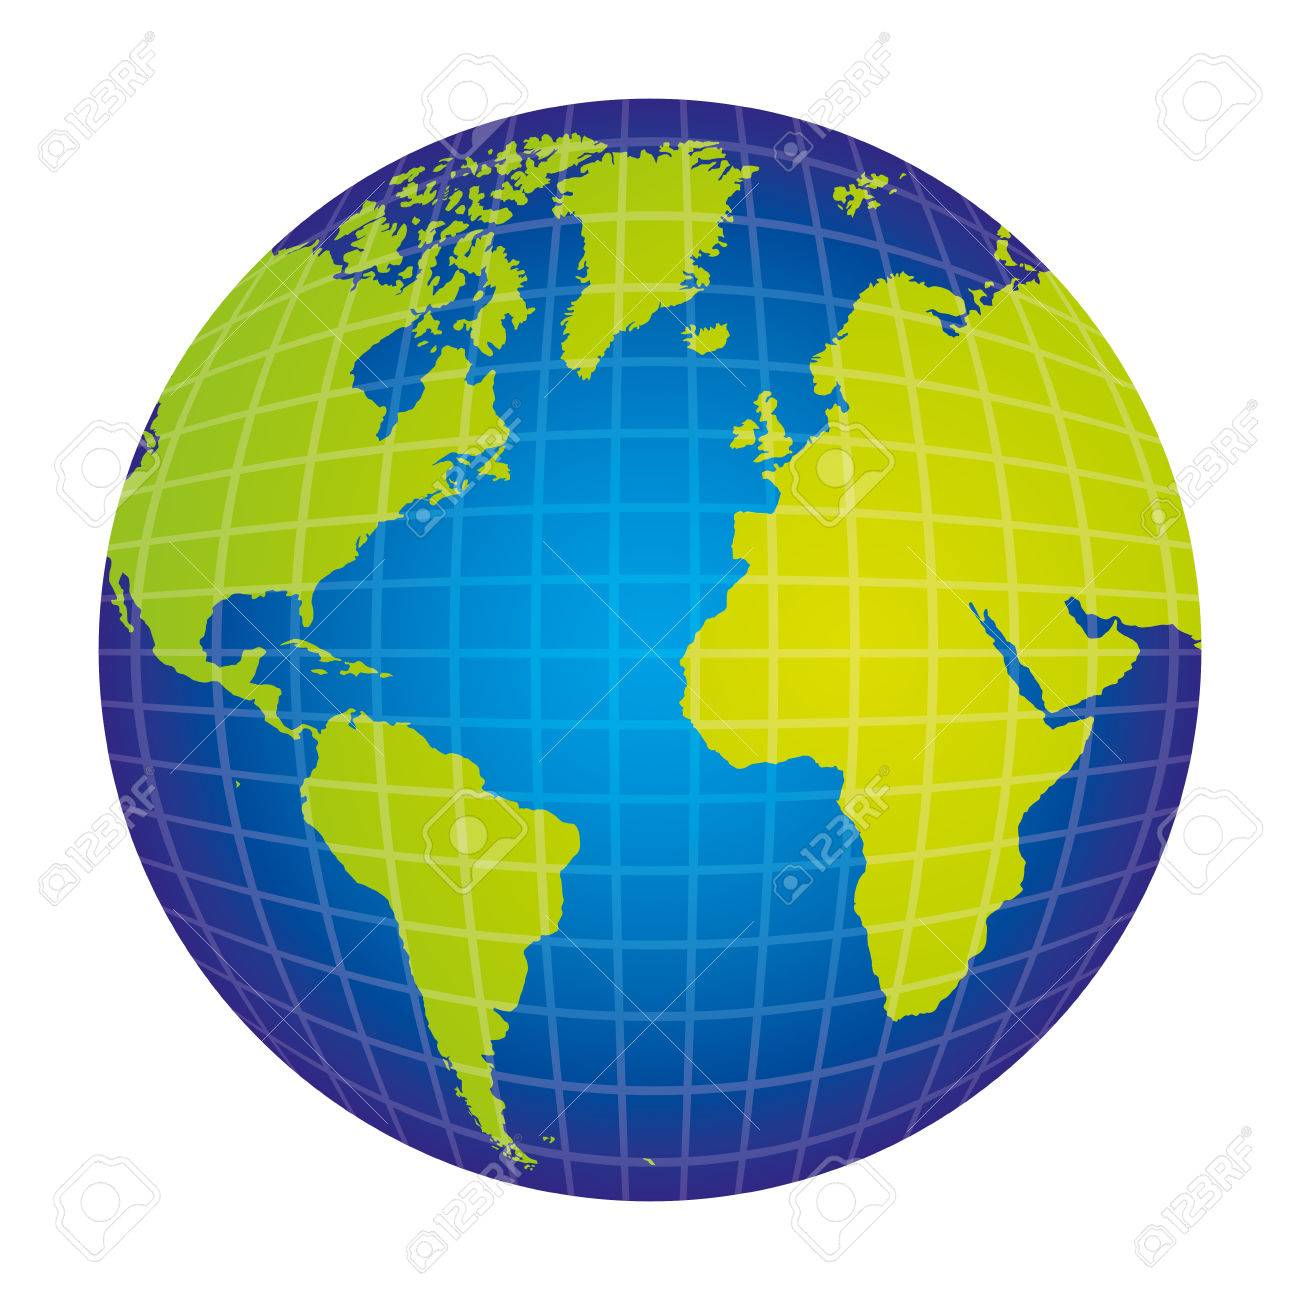 Applications manager world map business view global satellite colorful silhouette with world map view front side vector illustration stock vector 73504424 gumiabroncs Choice Image